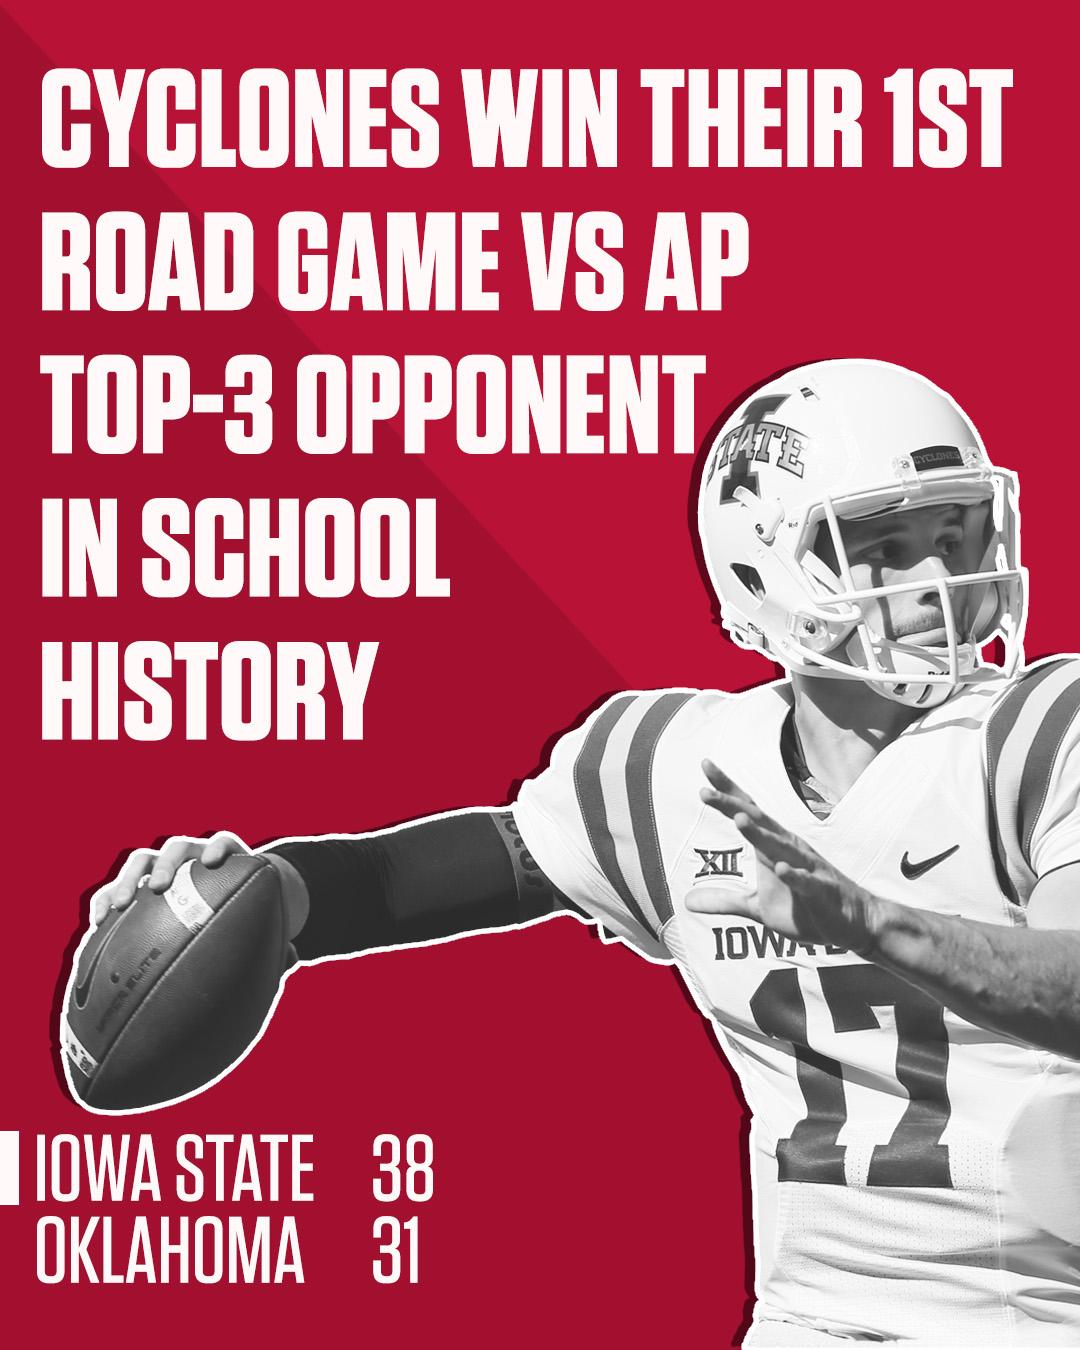 The Cyclones went into Norman and did something they've never done before. https://t.co/rzS4wDFOIU